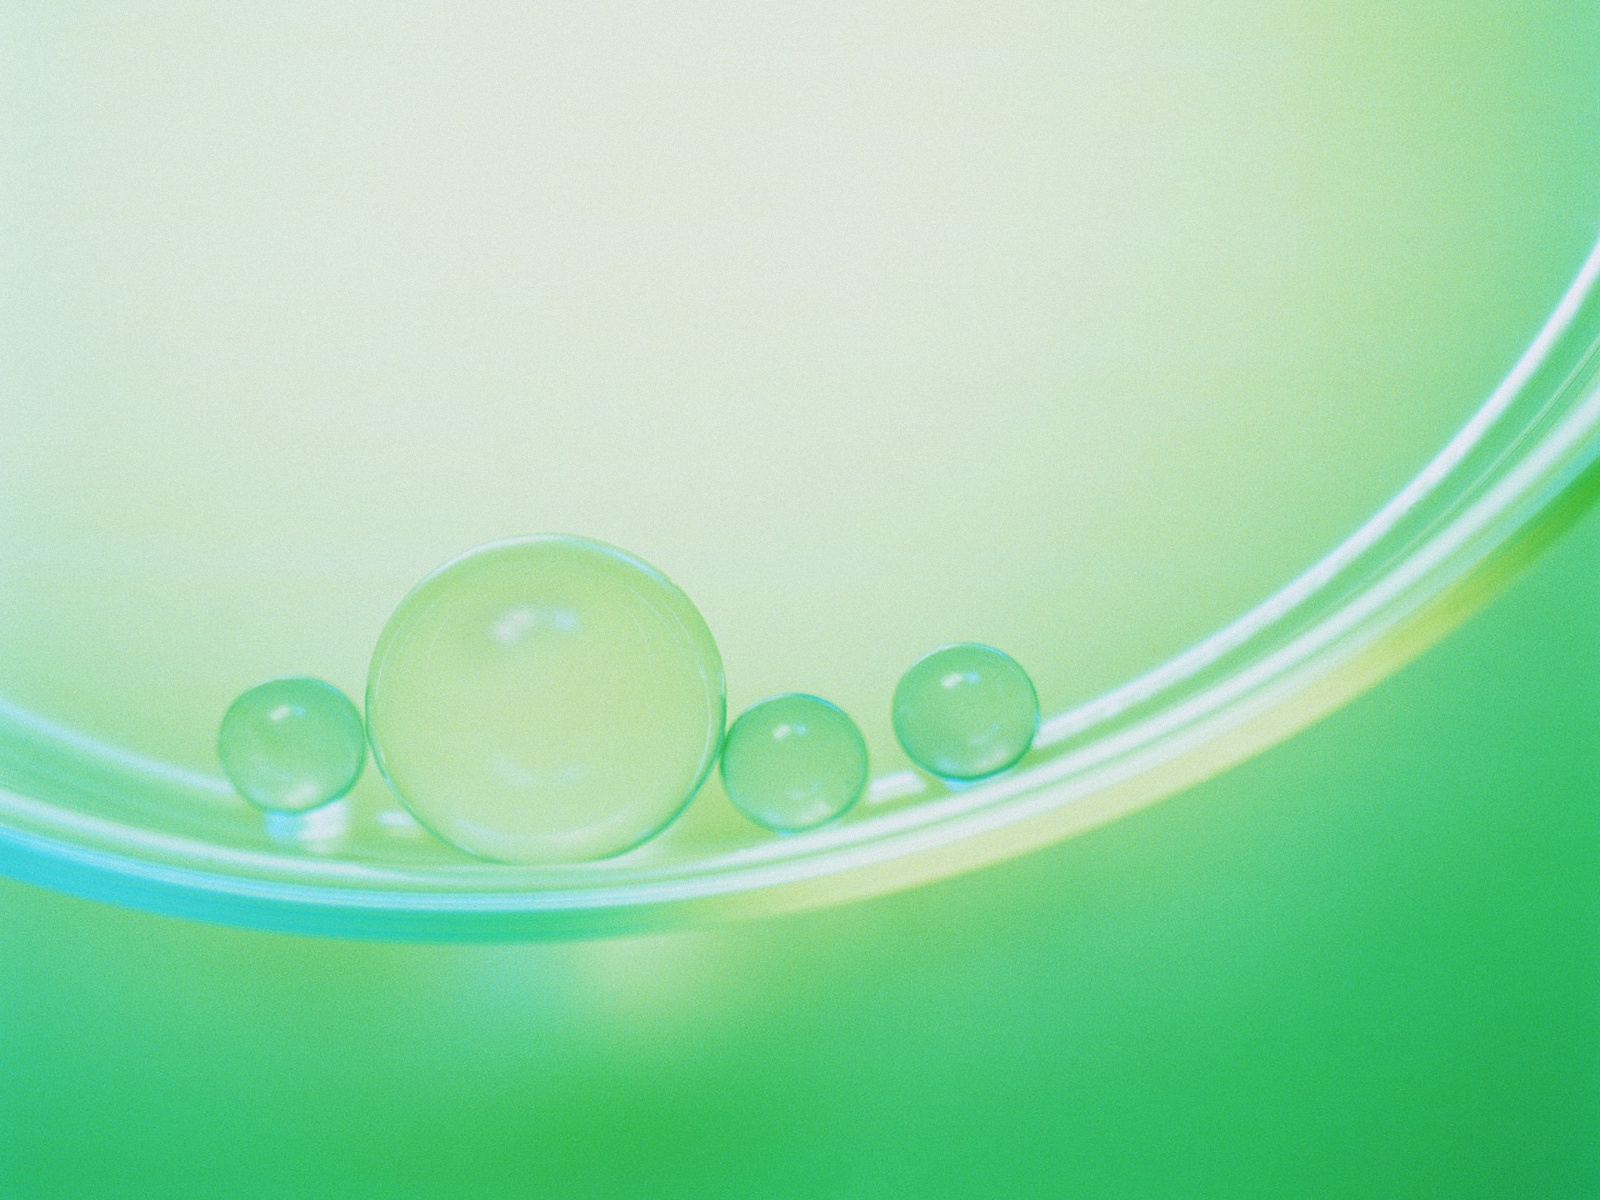 Green Glass Balls Lying in a Curve